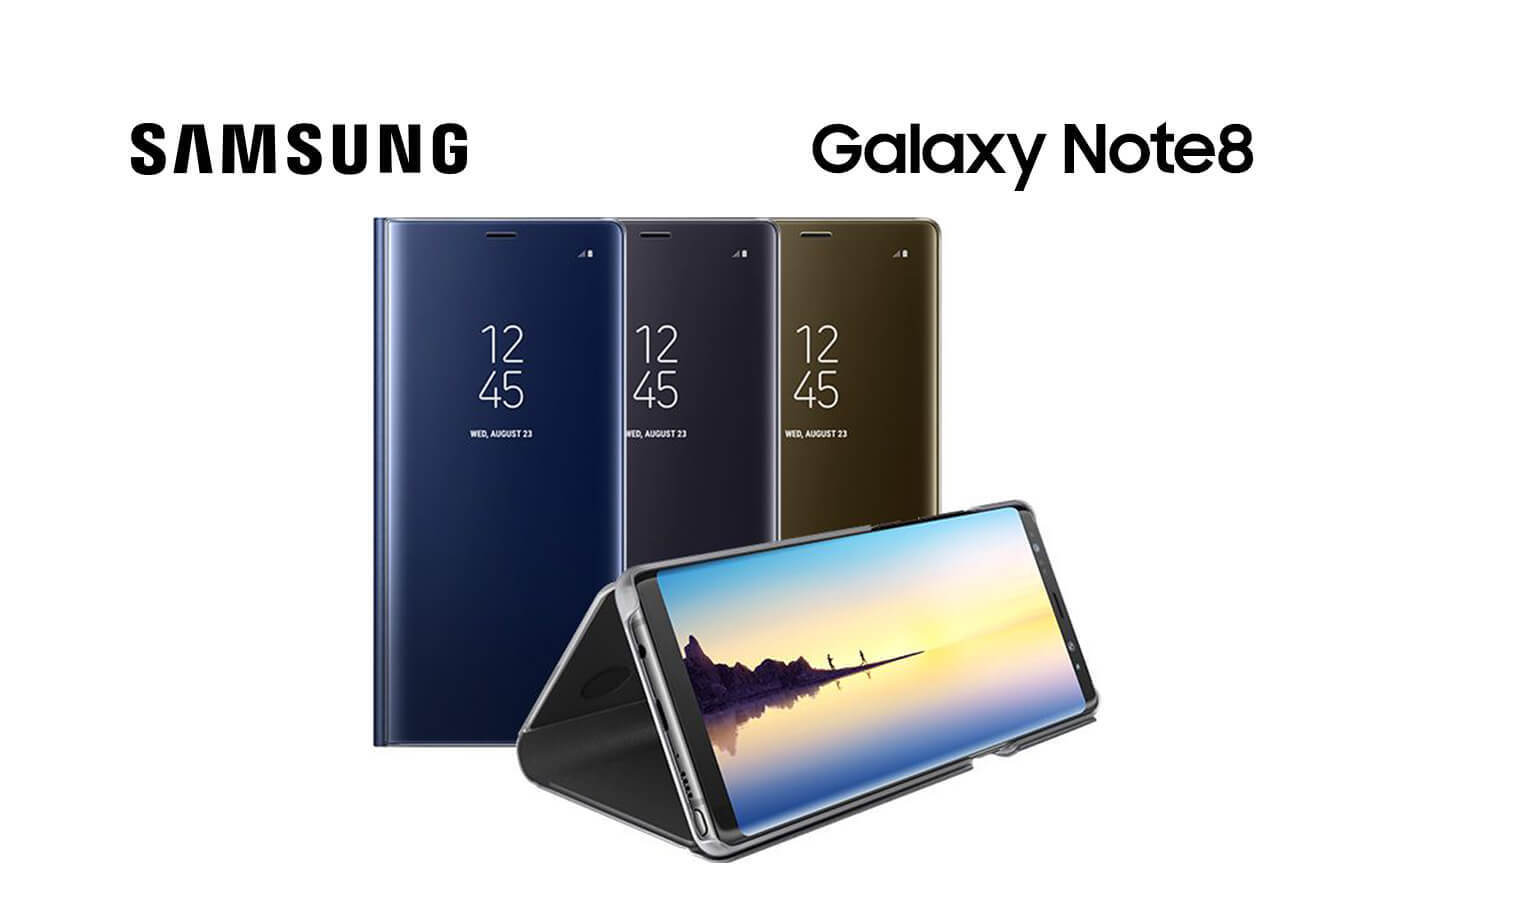 Genuine covers for your Galaxy Note8